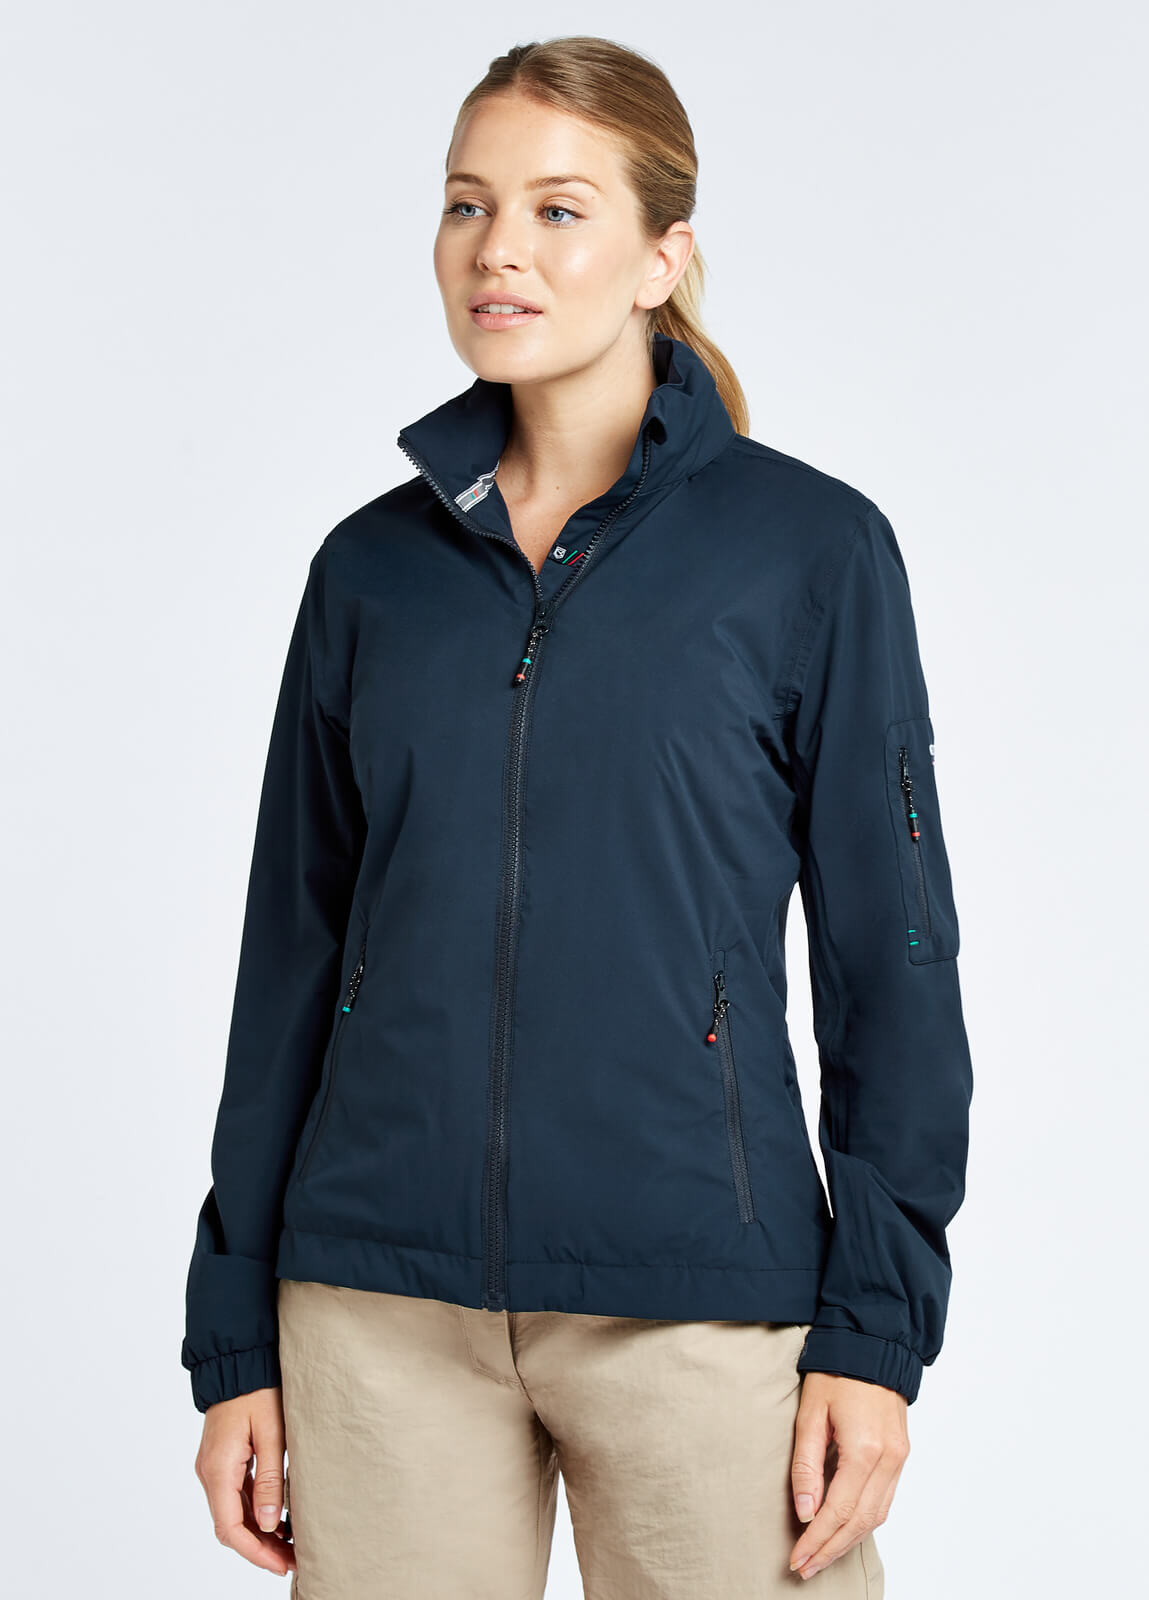 Corfu Women's Crew Jacket - Navy